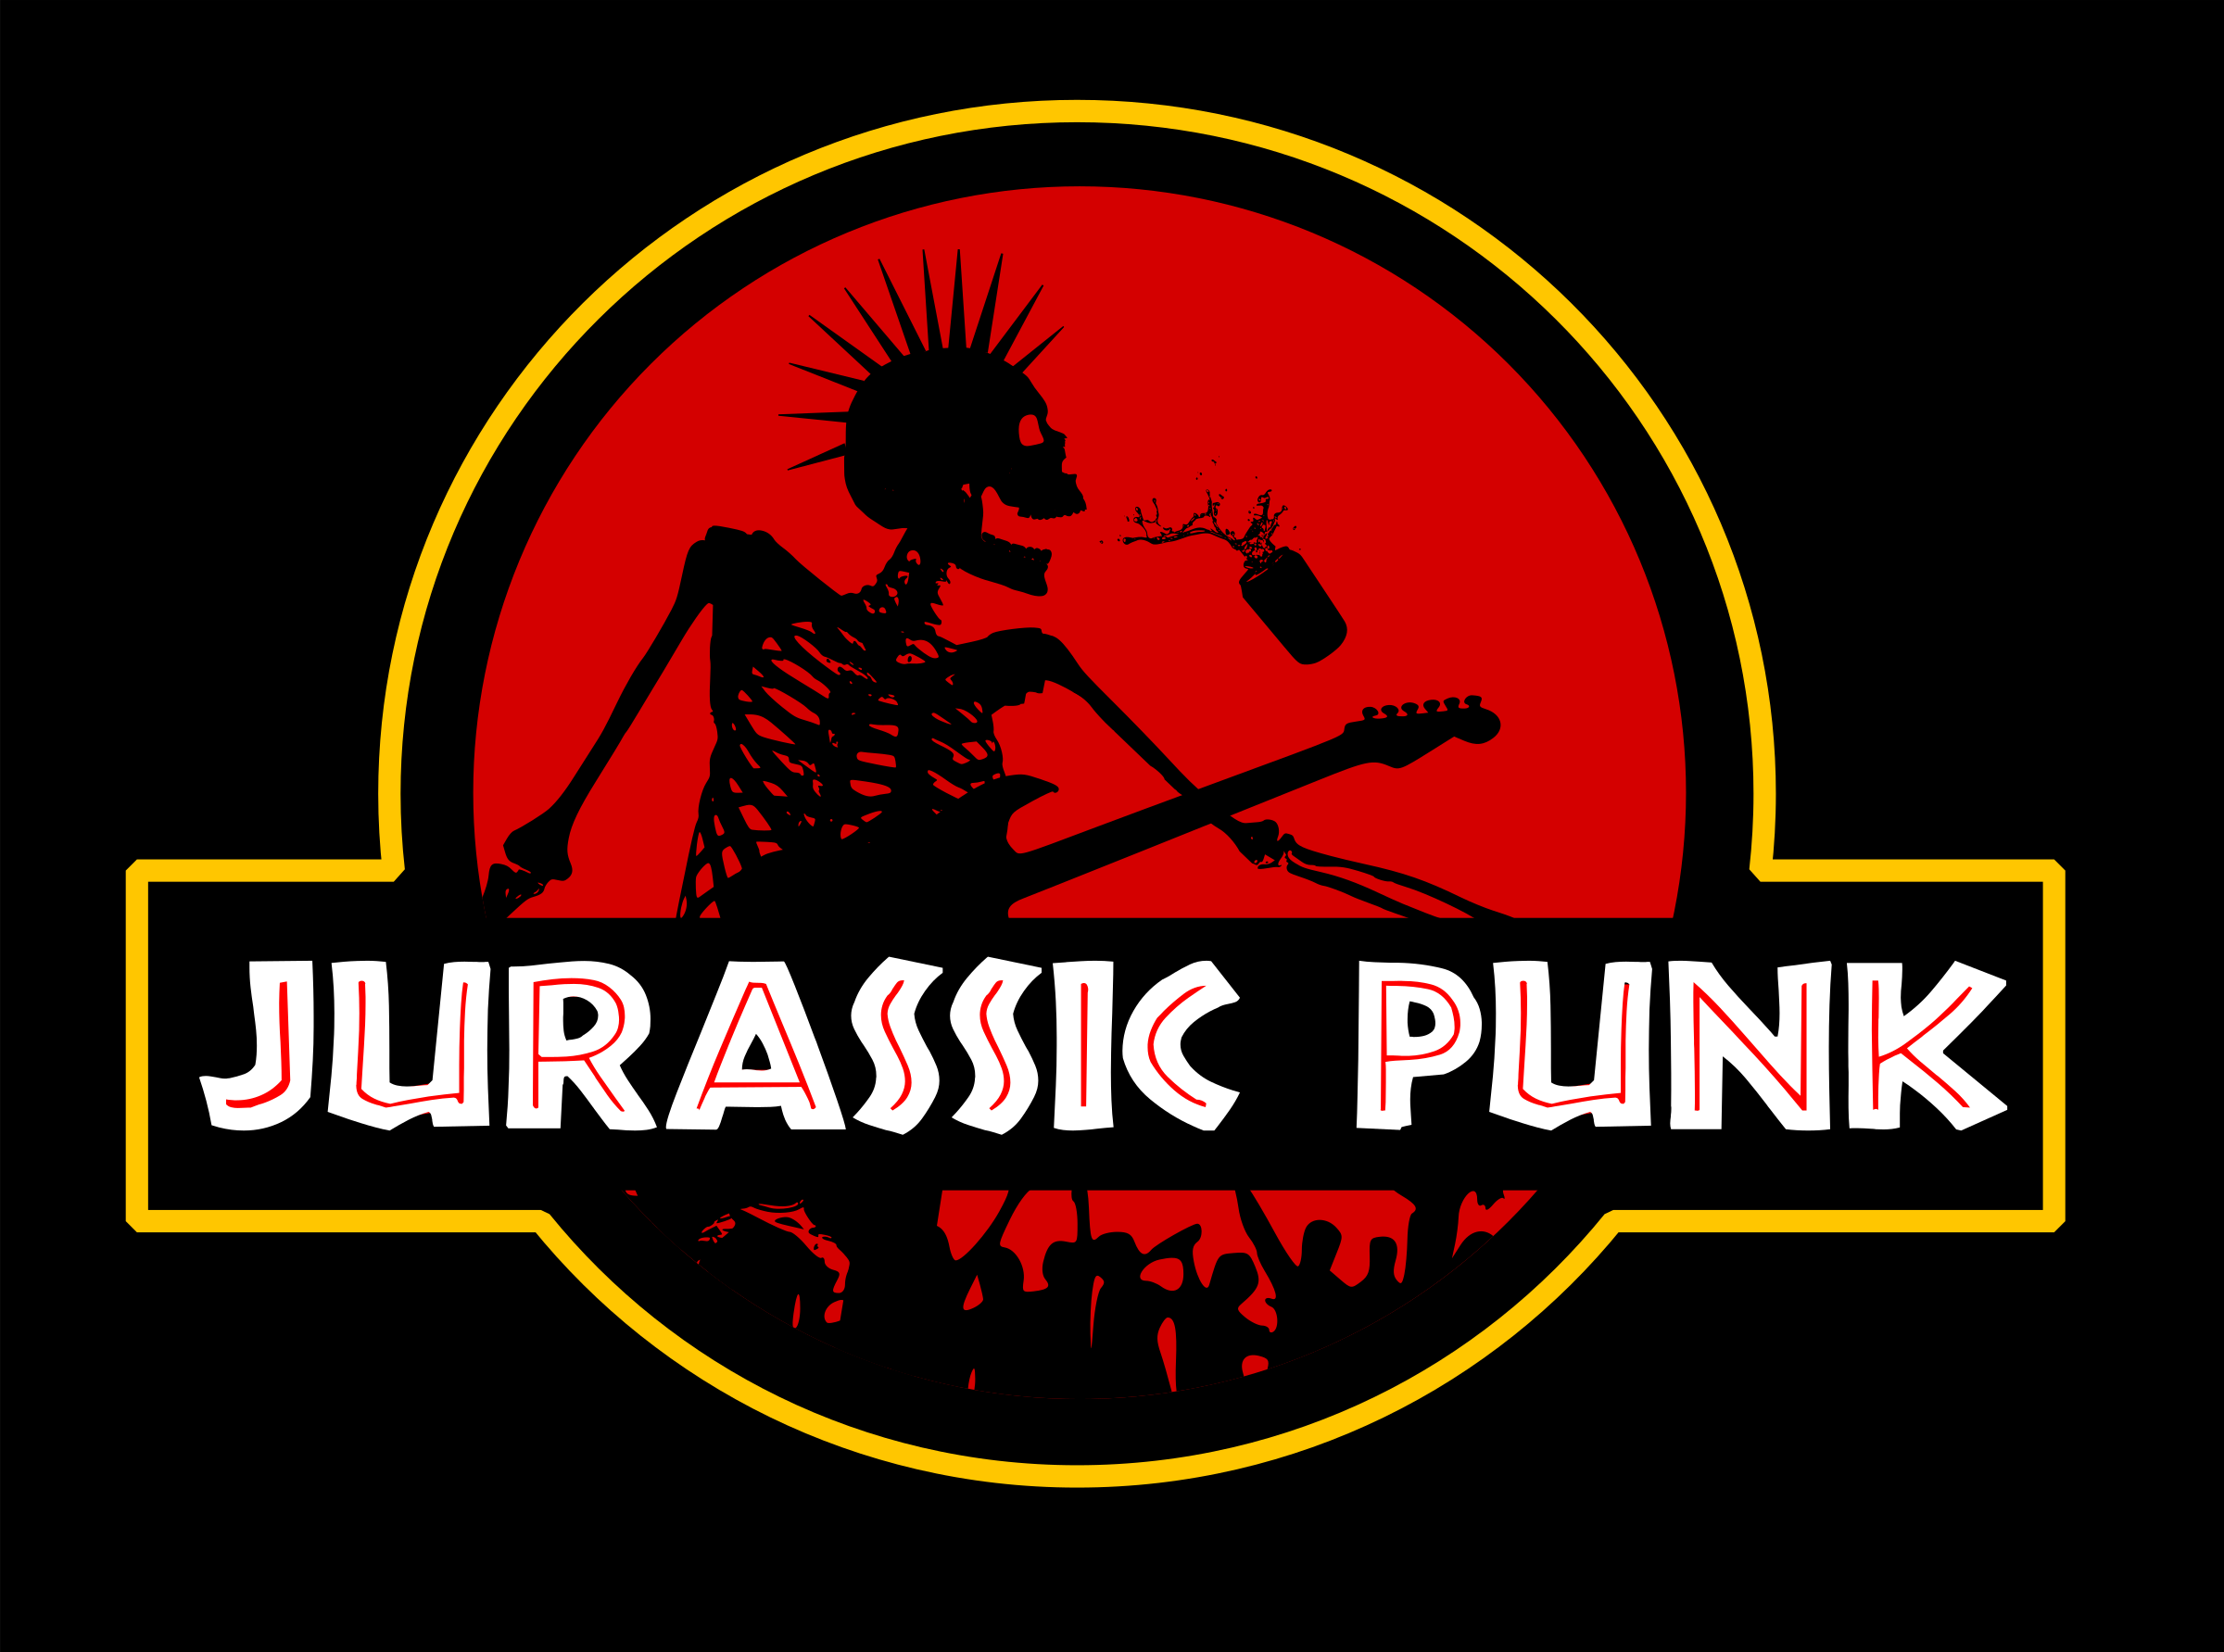 Jurassic Punk by Chrisdesign